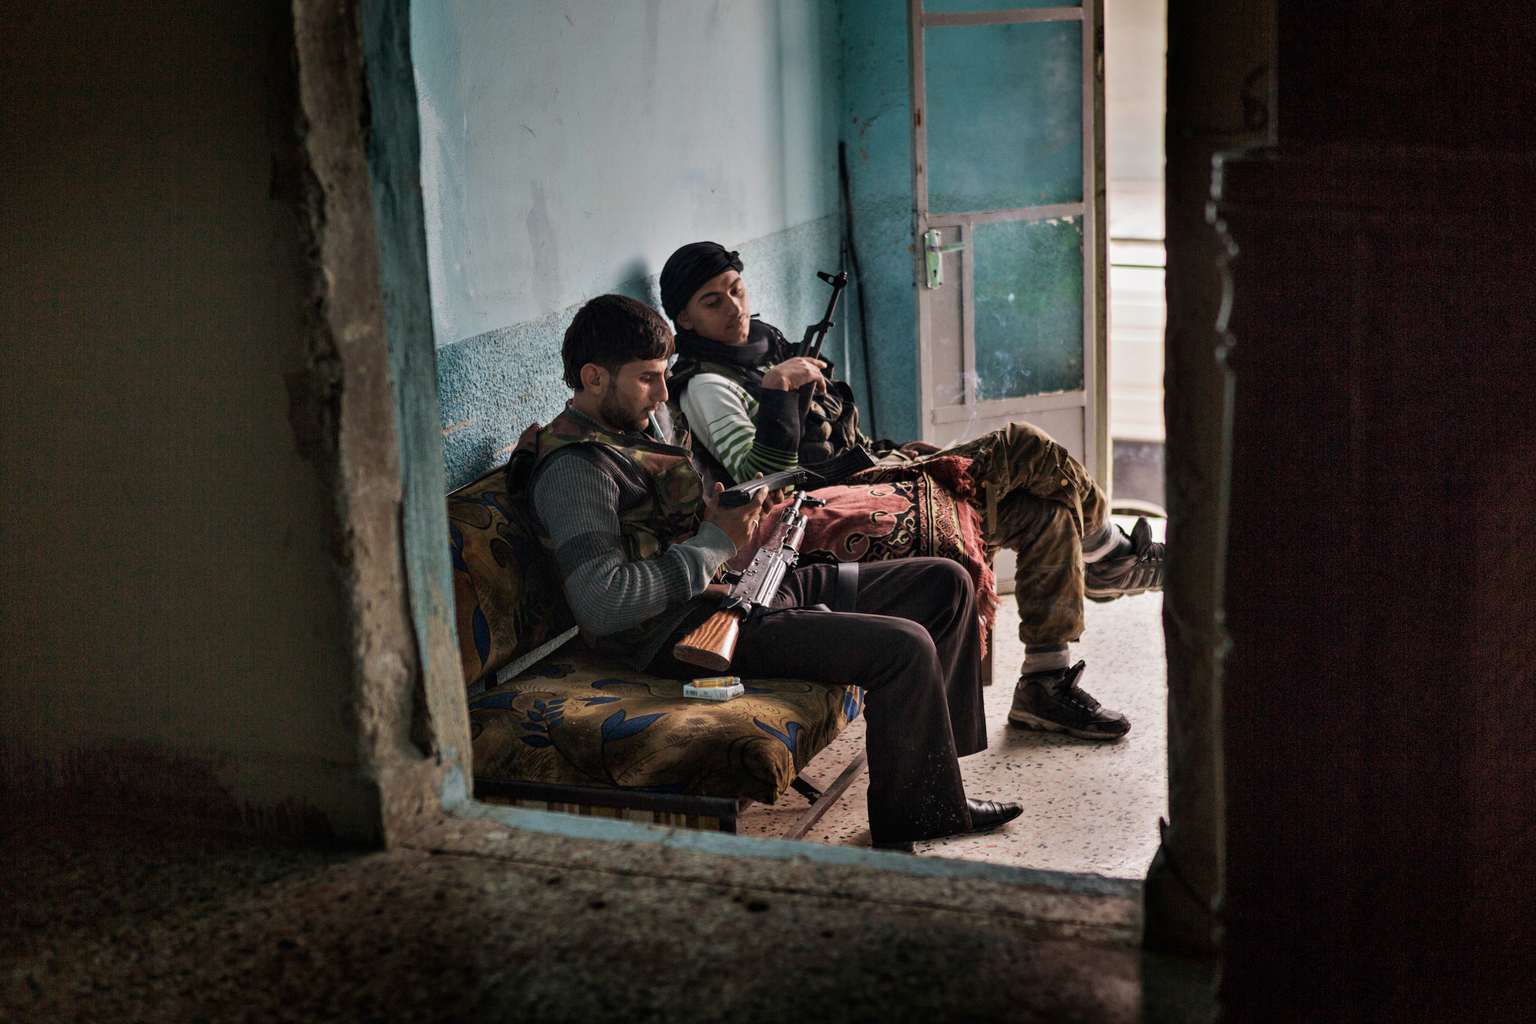 April 18, 2013, Sakhour, Aleppo. Members of a local FSA Khatiba [Free Syrian Army battalion] clean their weapons at their unit headquarters.